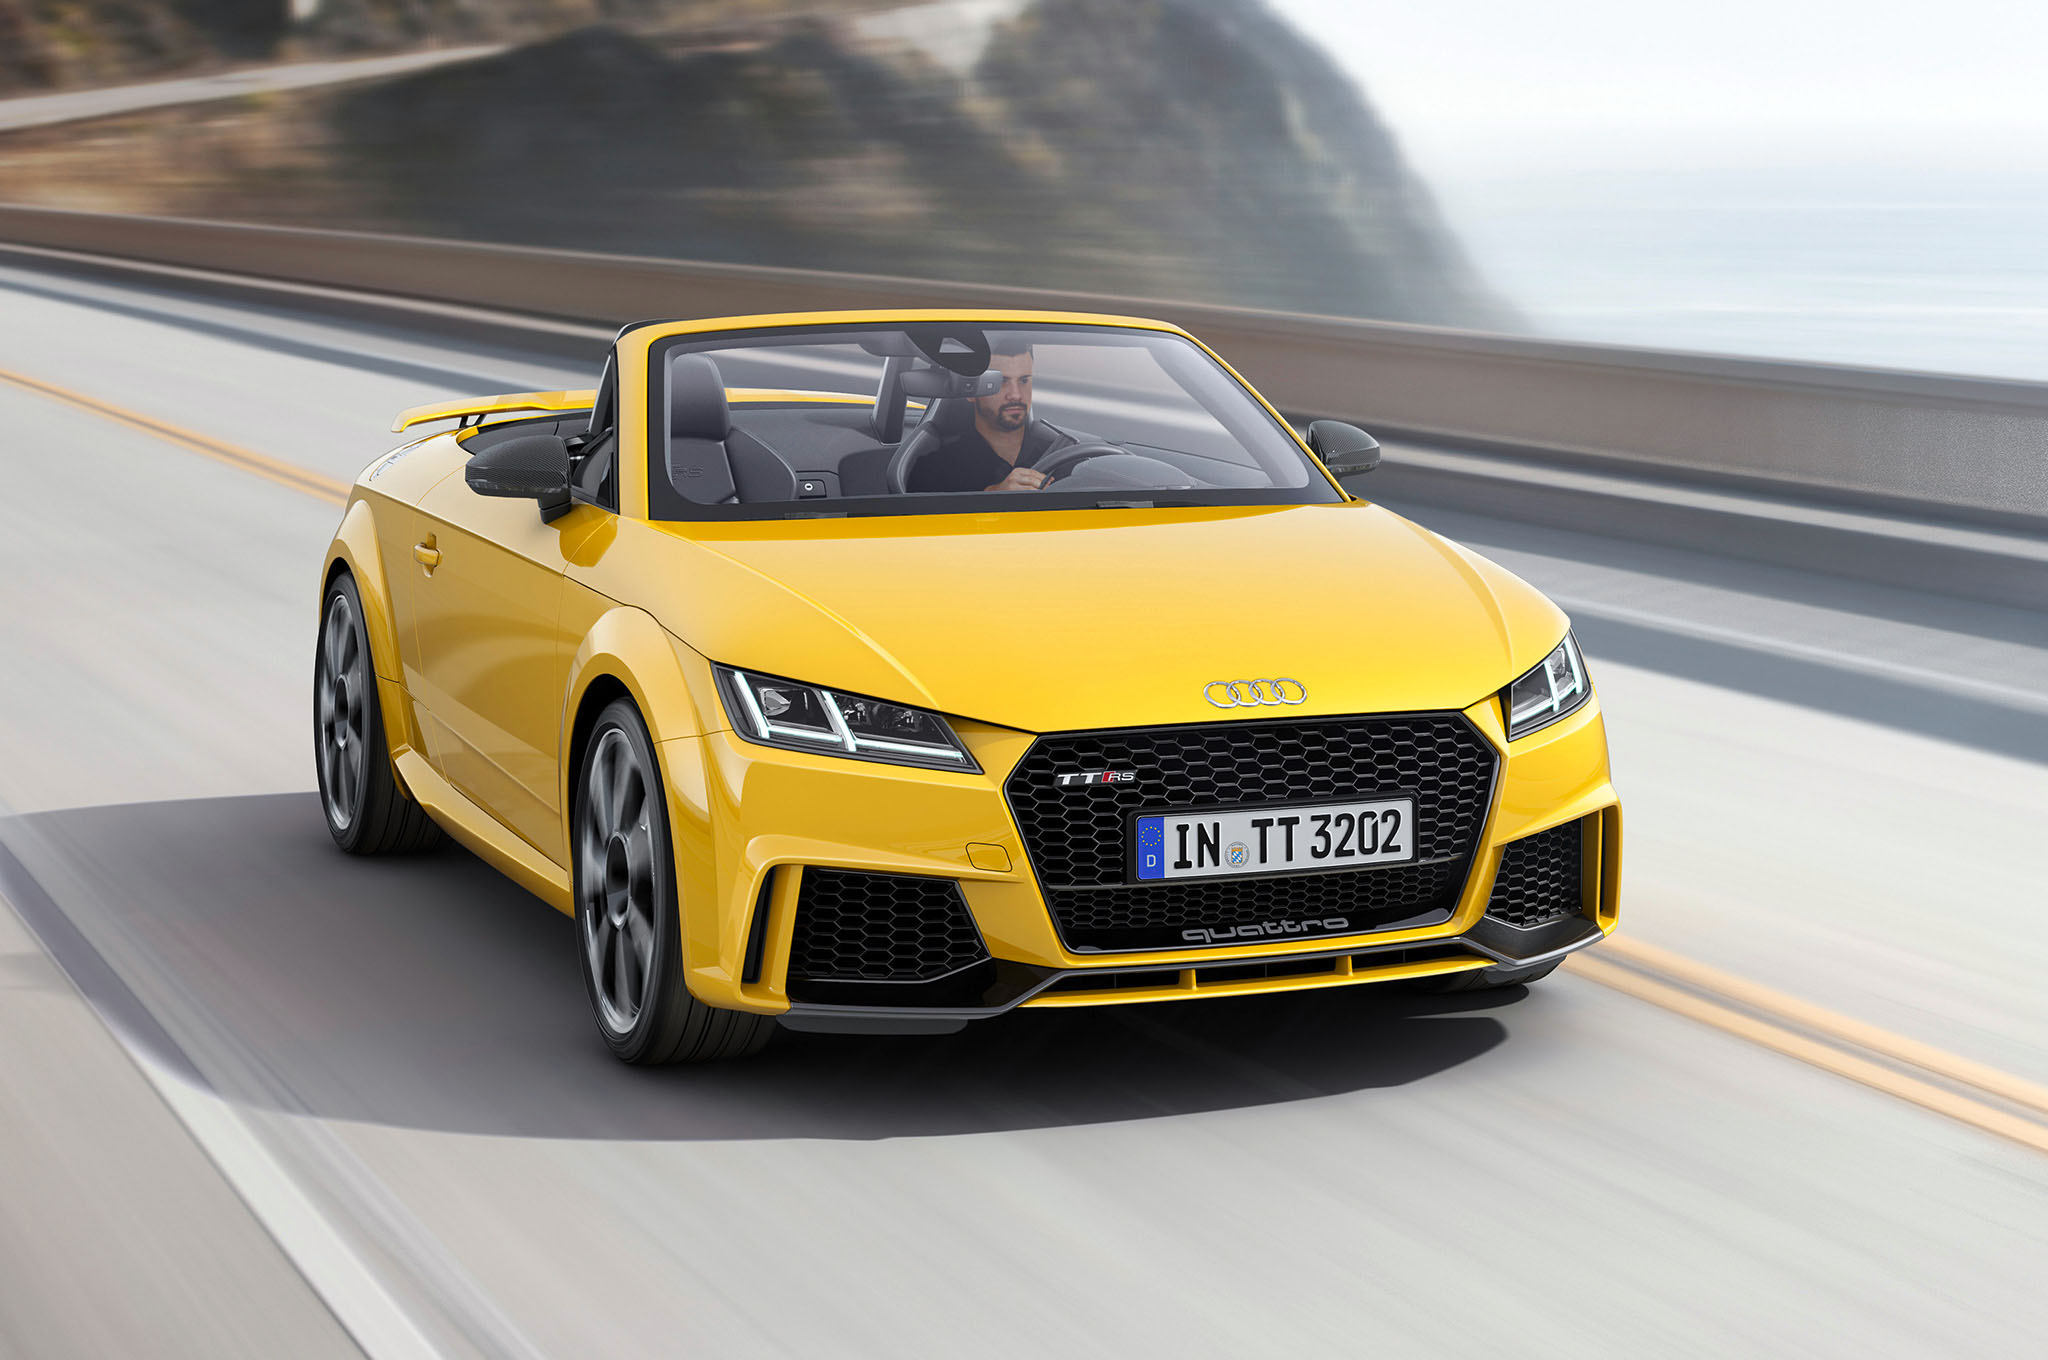 2017 Audi TT RS Convertible Widescreen Wallpaper | HD Car ...